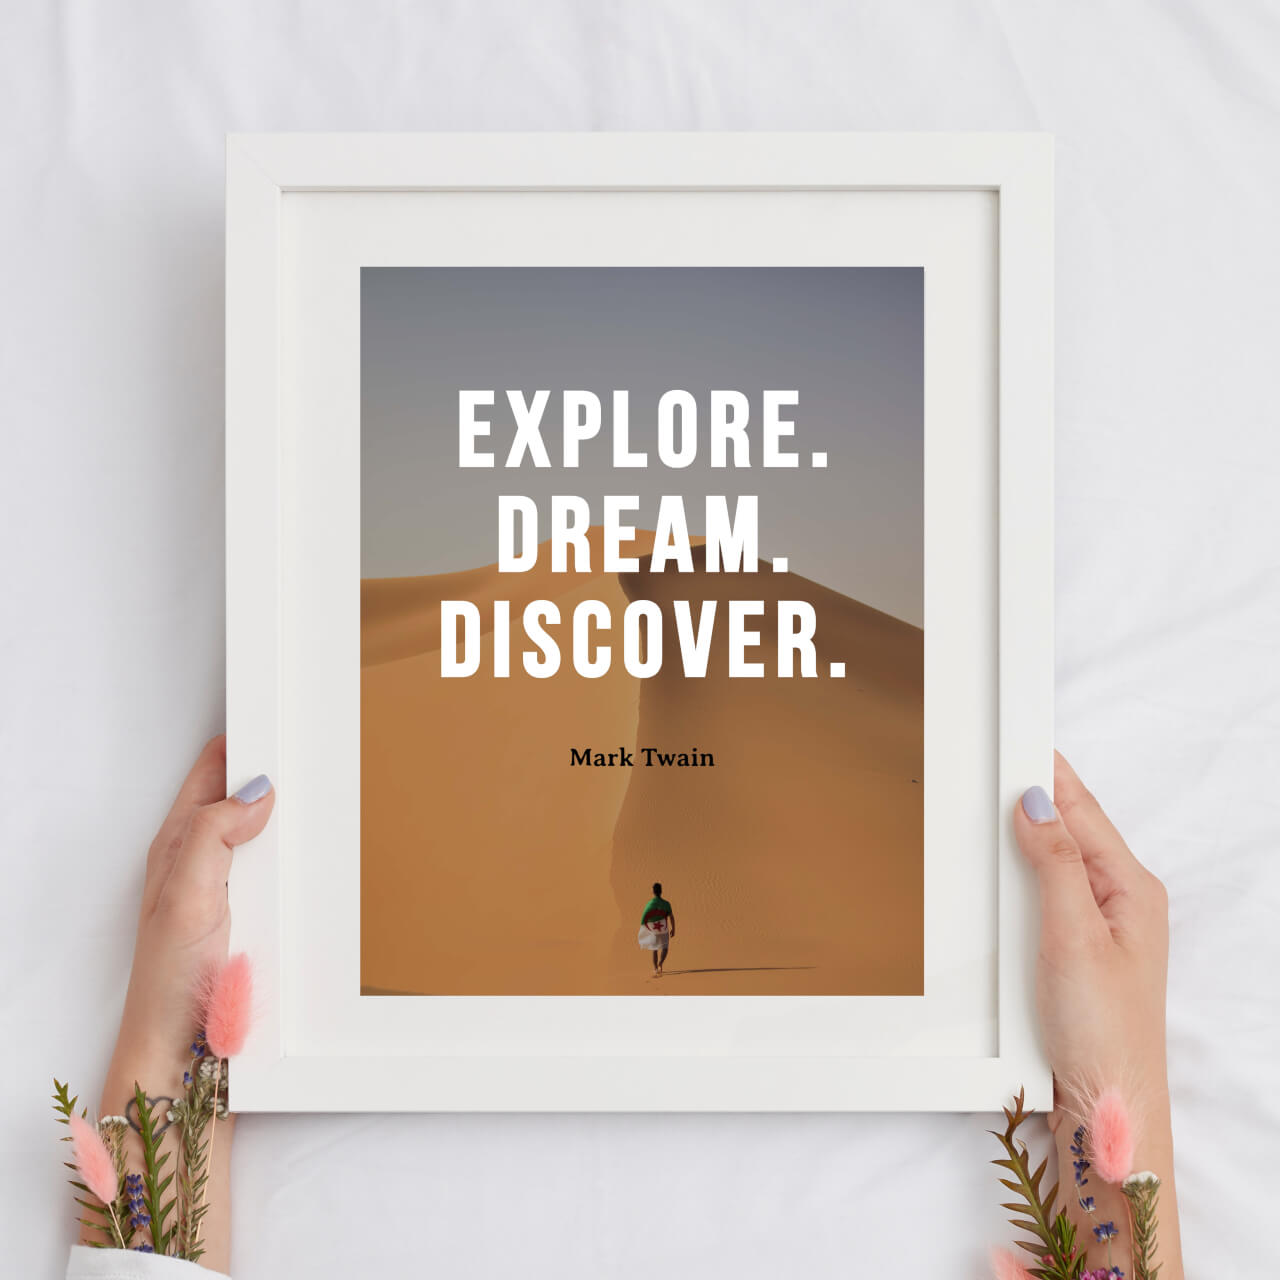 how to design quotes into wall art in BeFunky